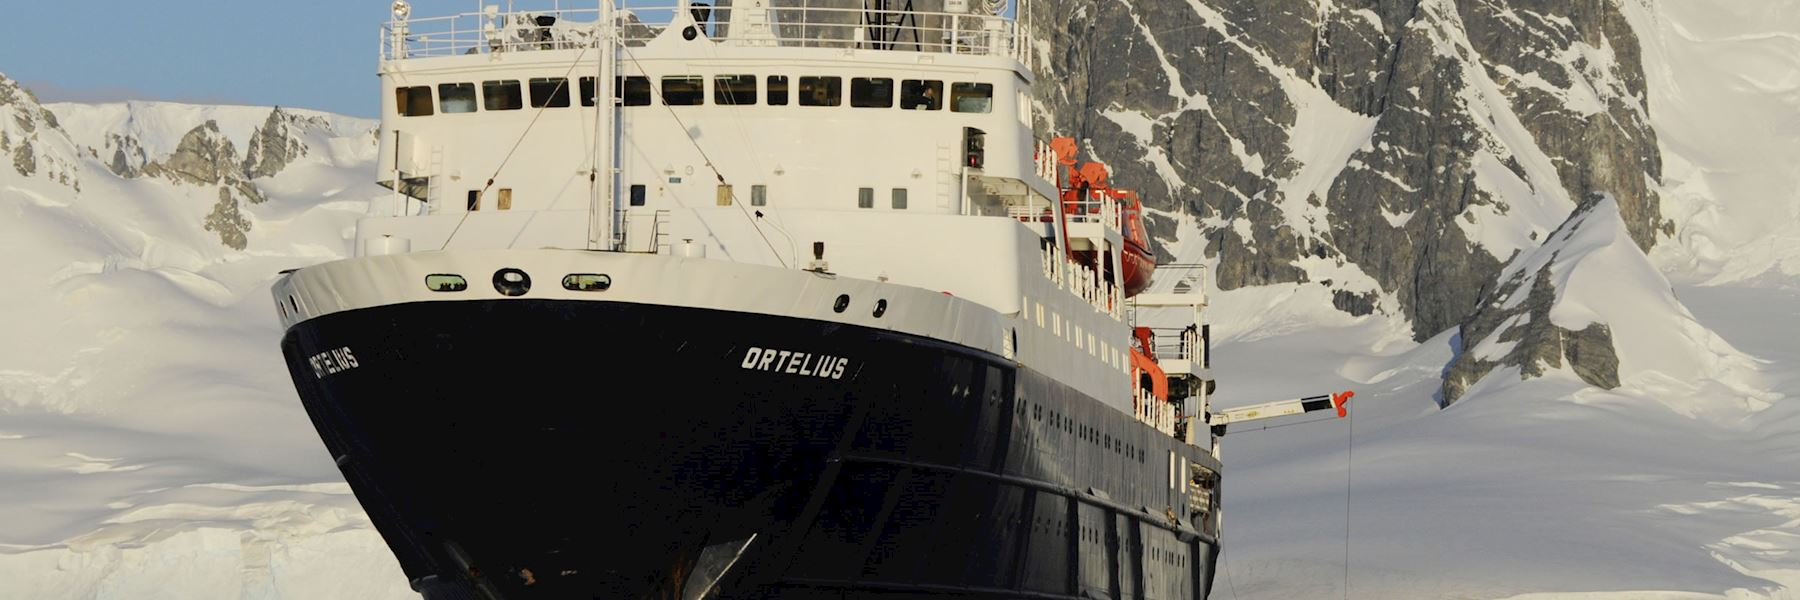 Cruise Ships in The Arctic: M/V Ortelius